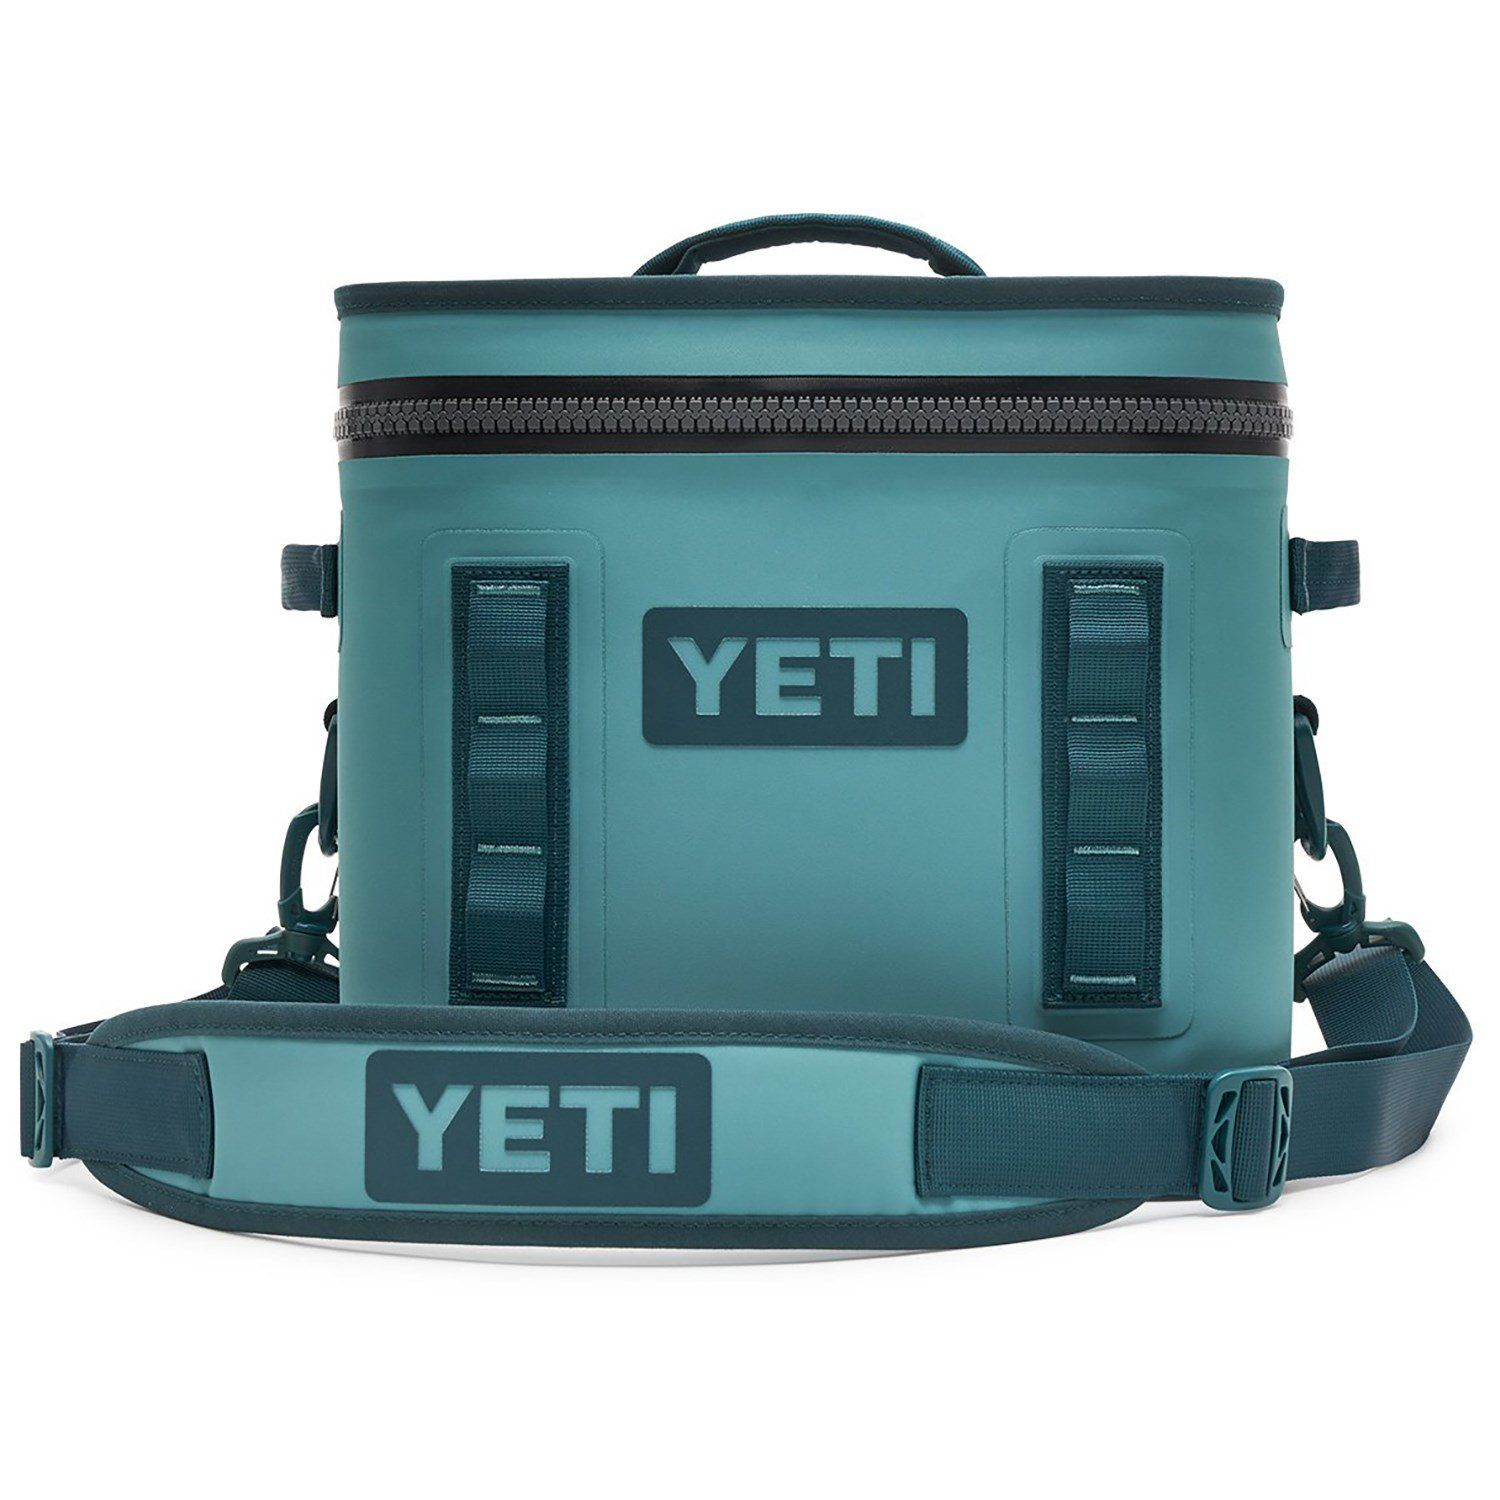 Yeti Hopper Flip 12 Cooler With Top Handle In 2020 Soft Cooler Portable Cooler Yeti